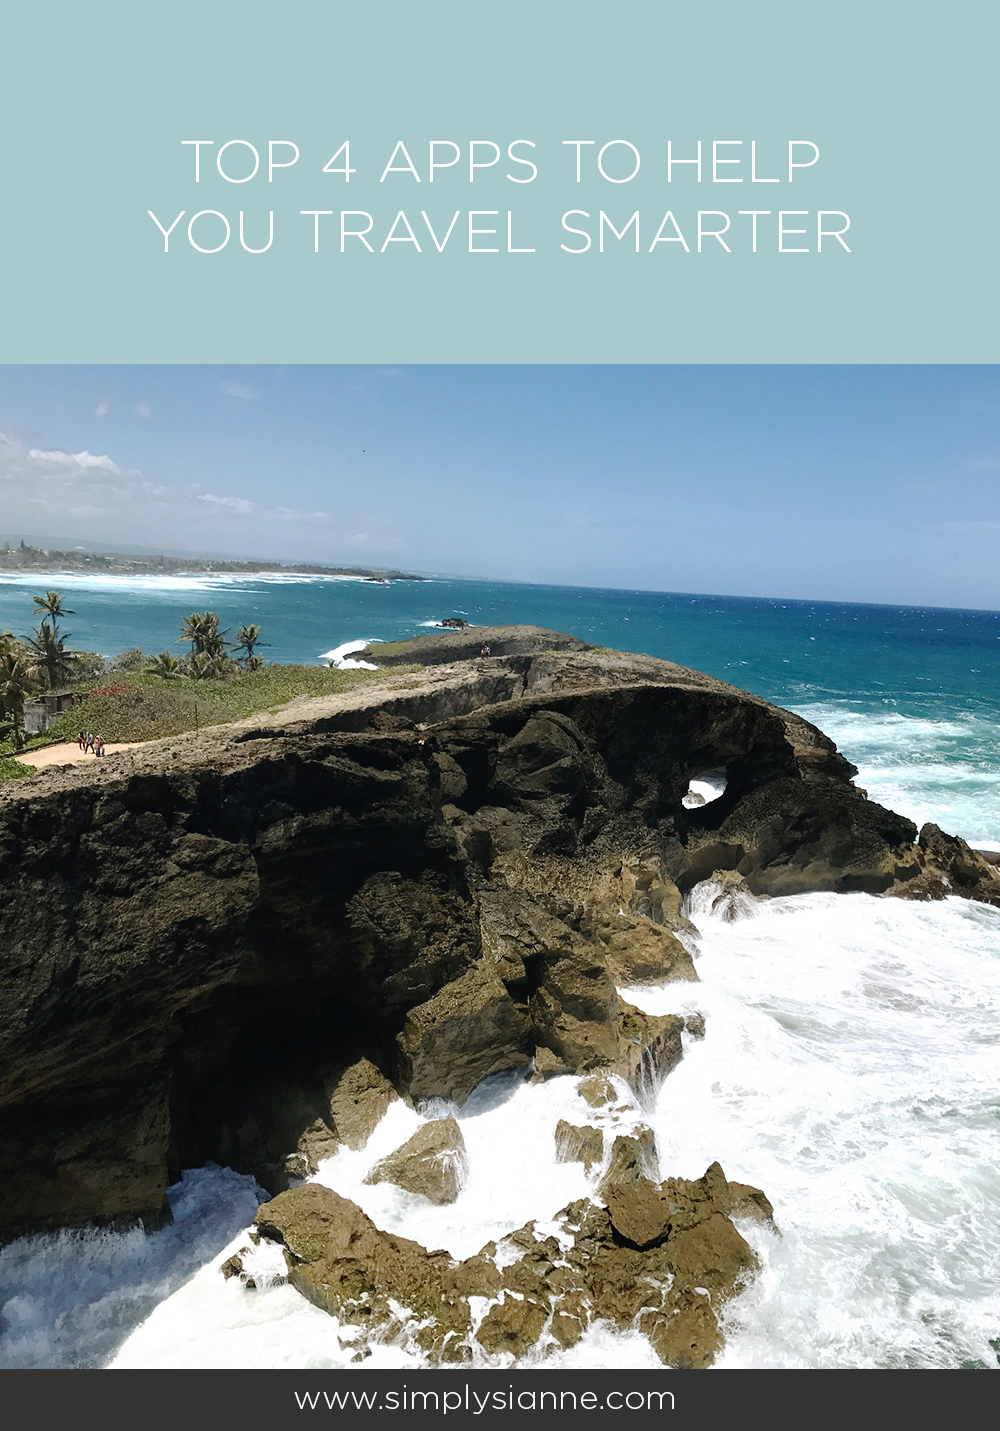 Travel smarter with these 4 apps!